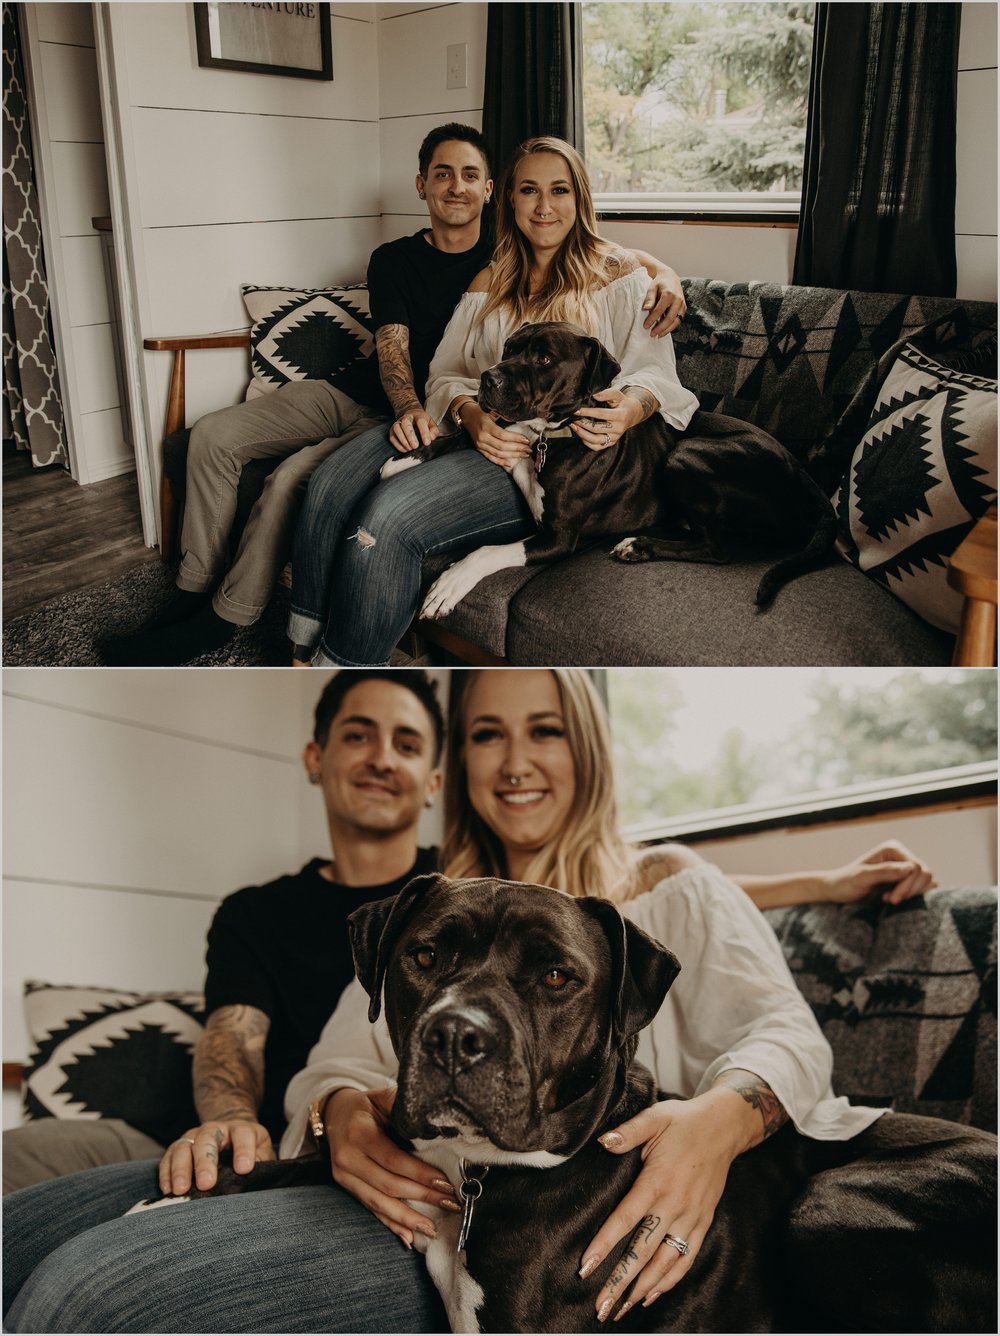 Married couple cozies up on their couch with their dog